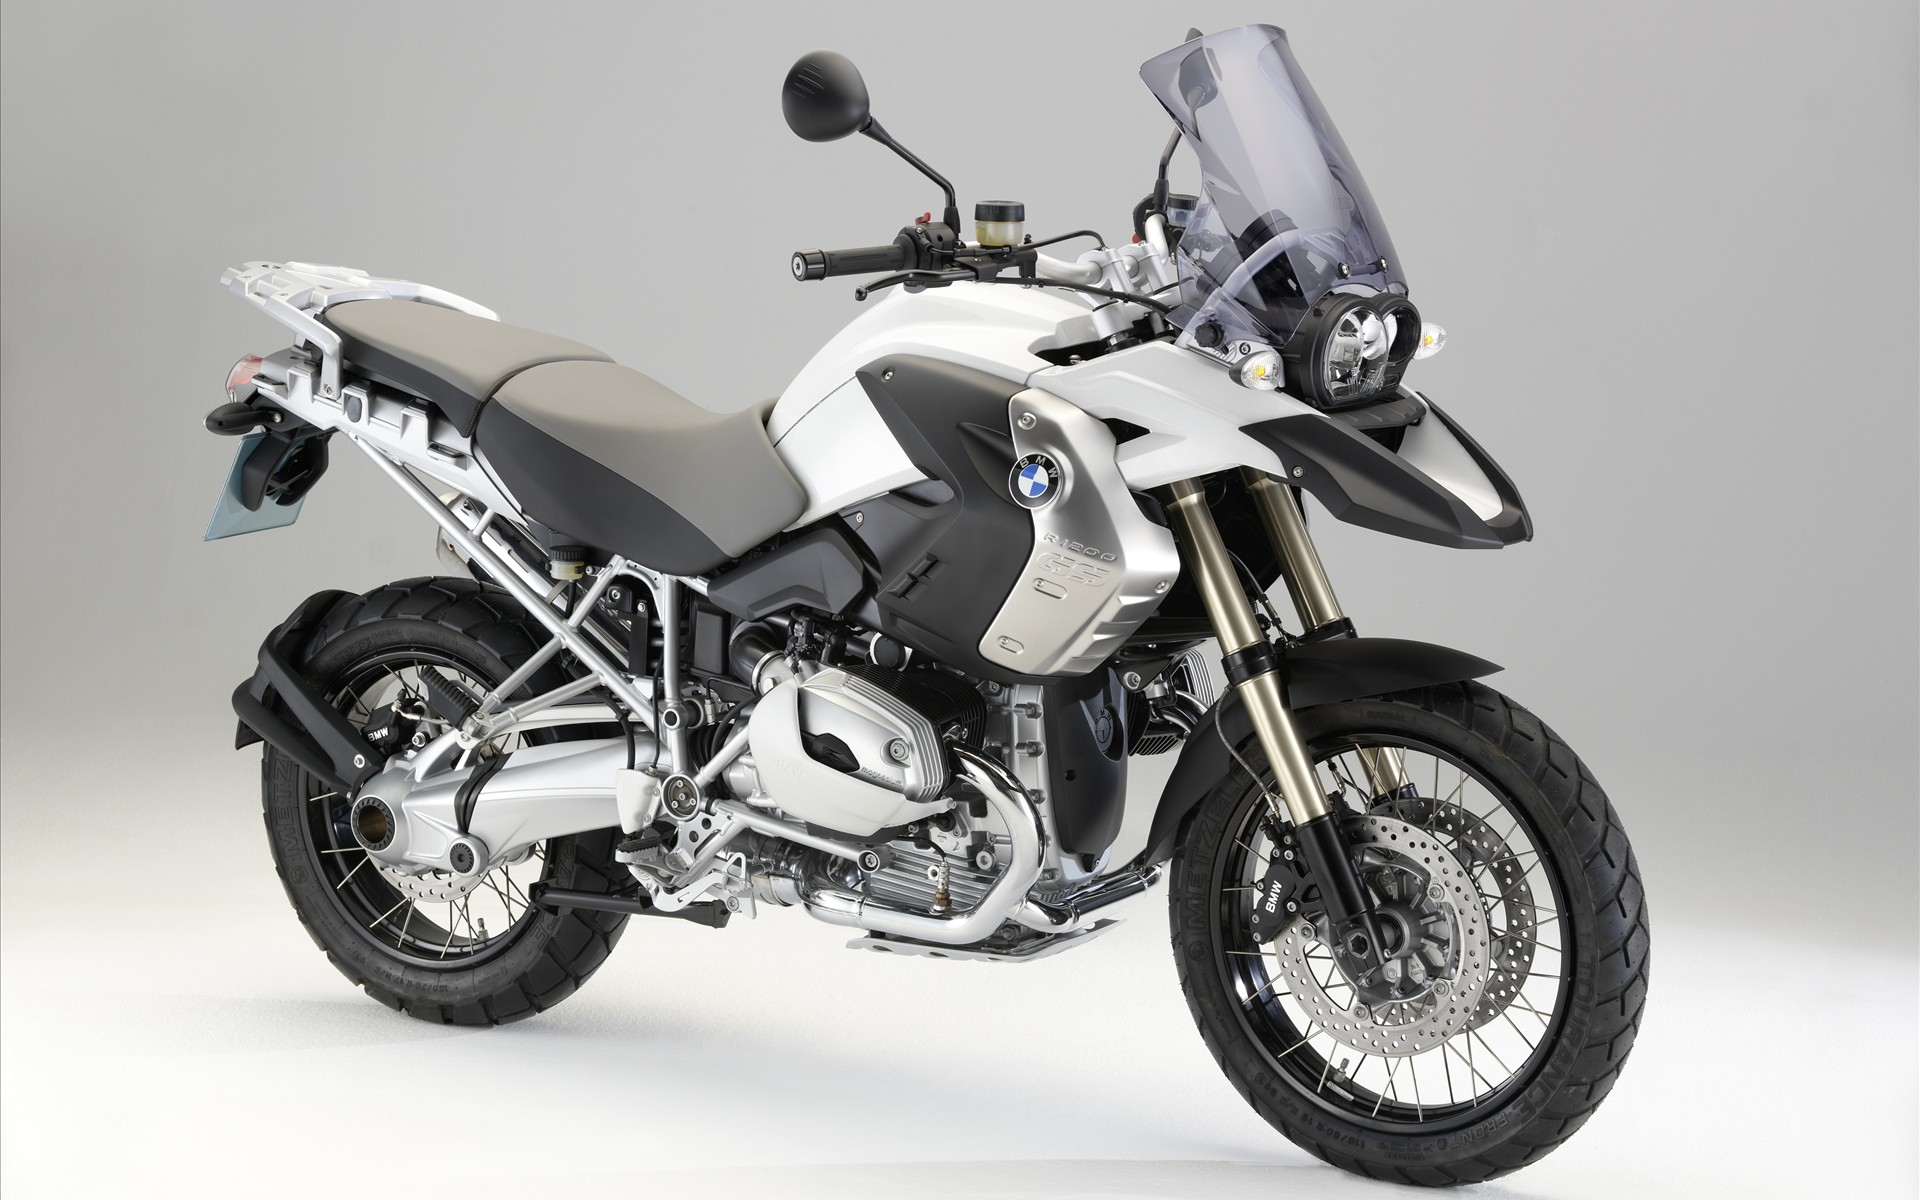 HD Wallpapers BMW New Special Edition R 1200 GS